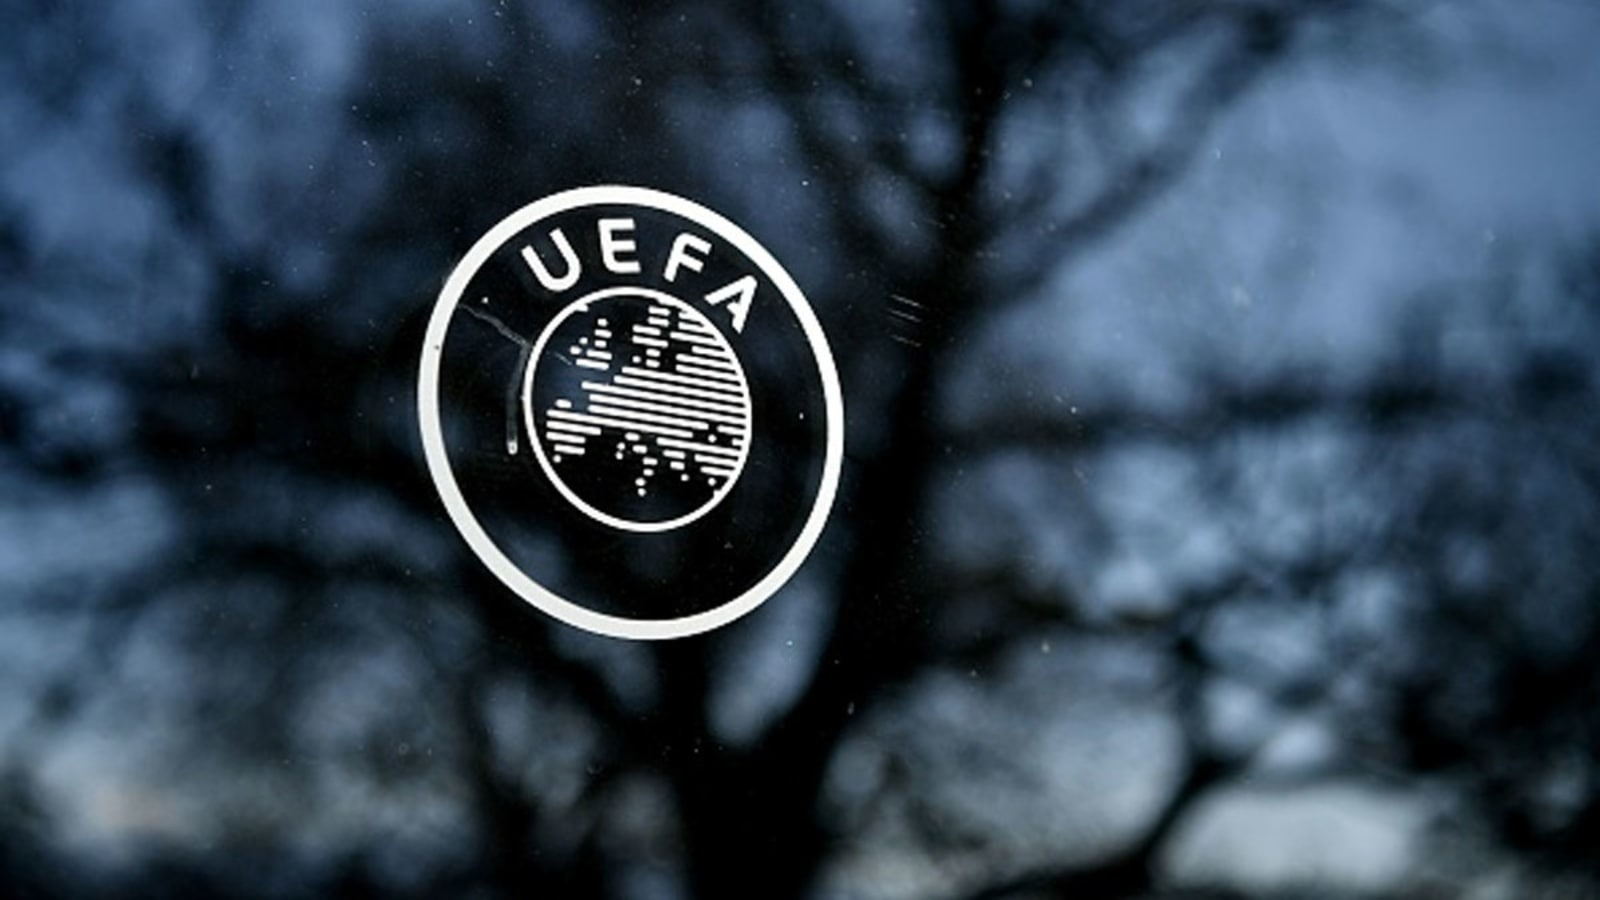 UEFA announces disciplinary action against Barcelona, Real Madrid and Juventus